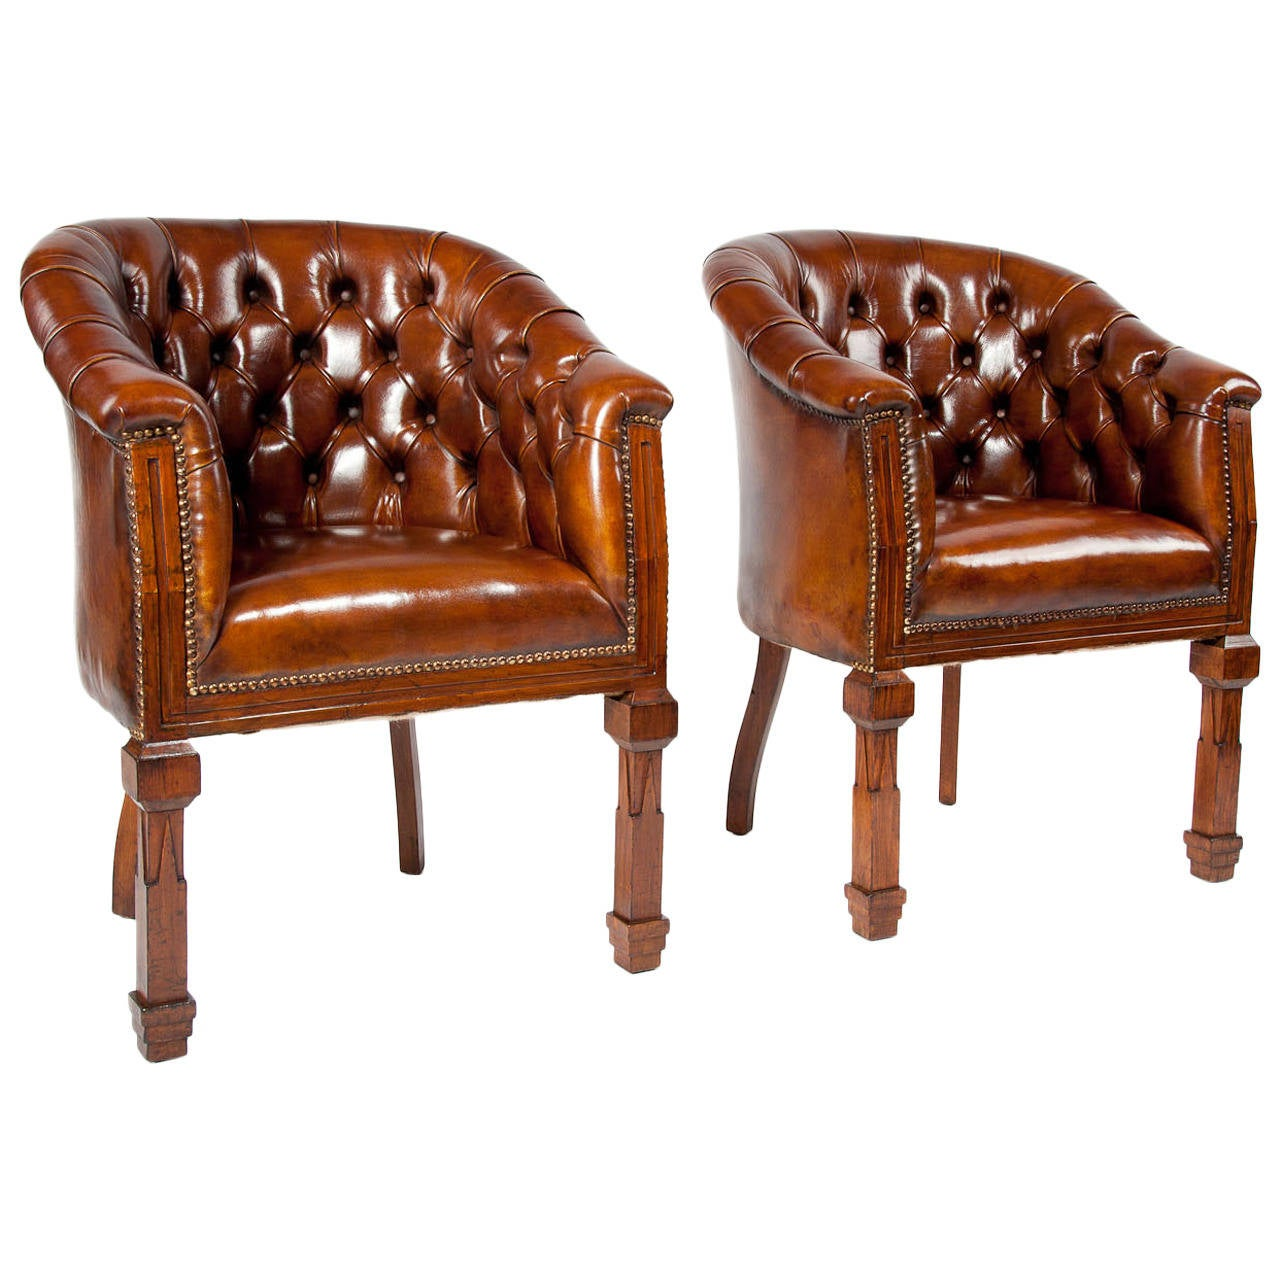 Antique Pair Of Leather Tub Chairs At 1stdibs